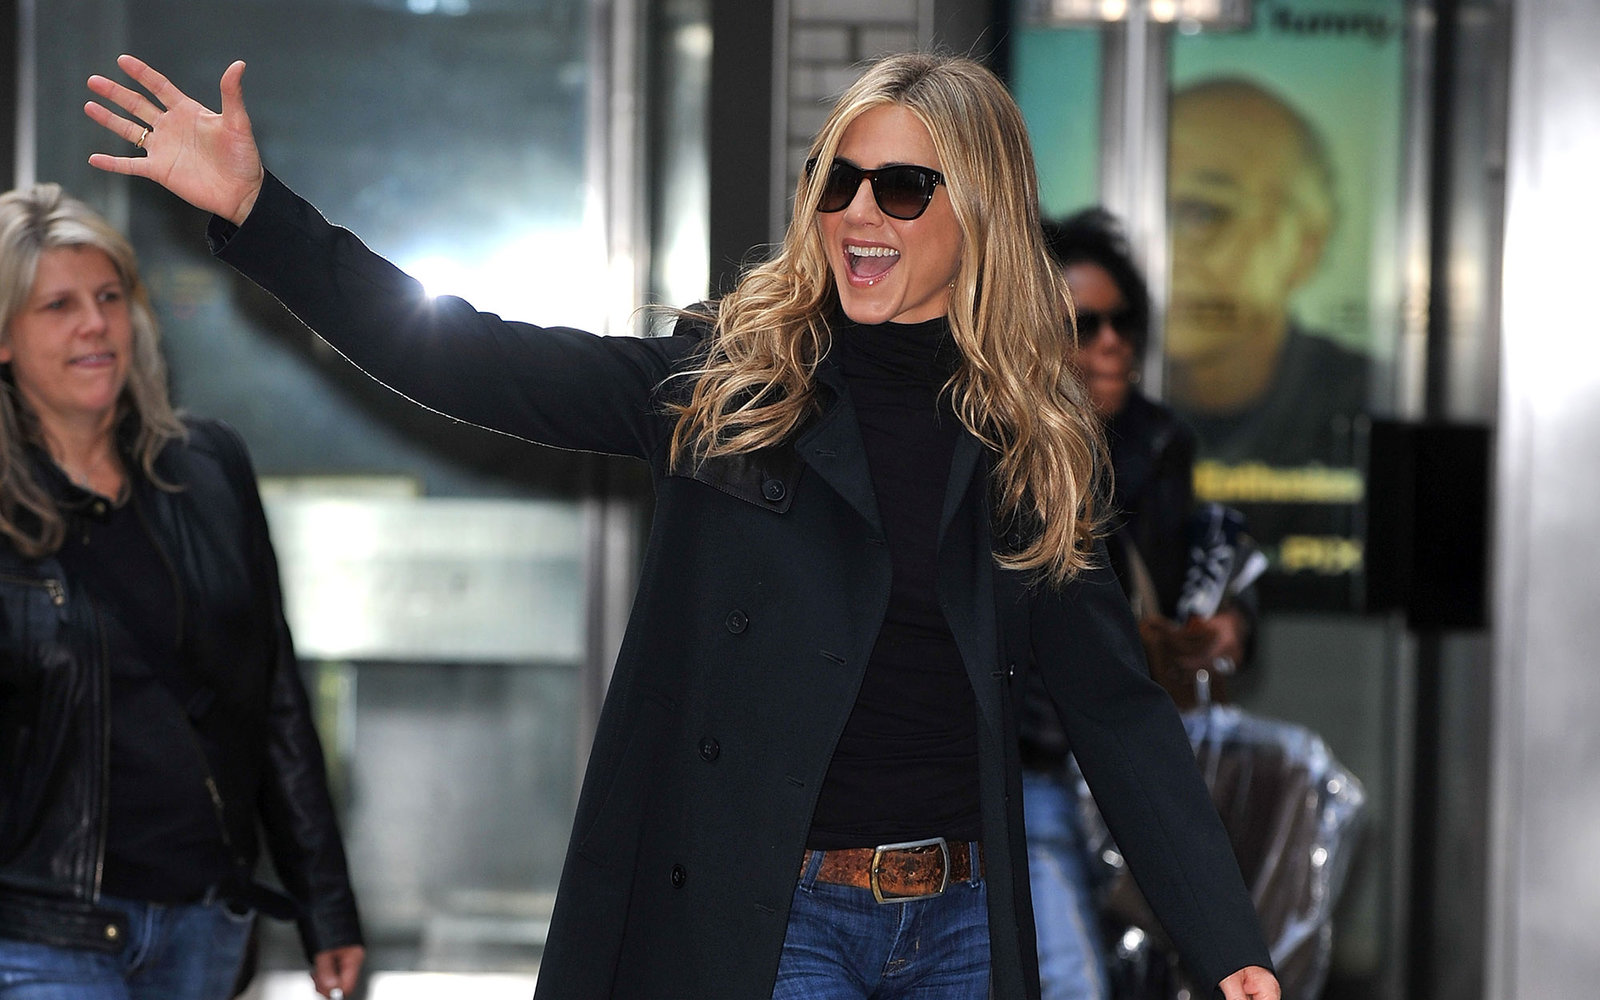 Jennifer Aniston's Weird Airplane Habits—and Other Celeb Travel Quirks